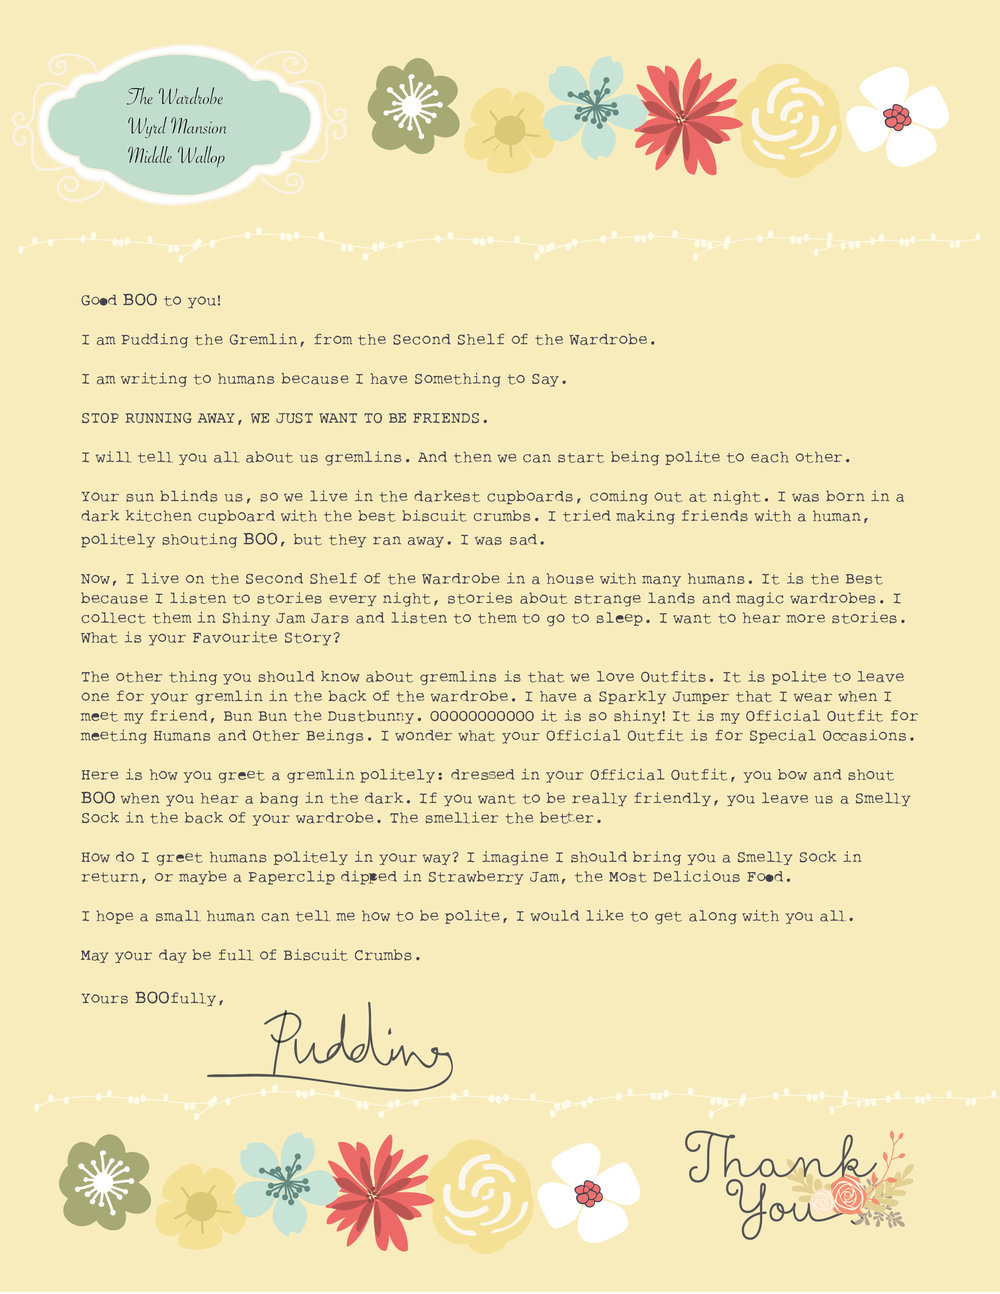 PuddingInTheWardrobe_letter-01.jpg